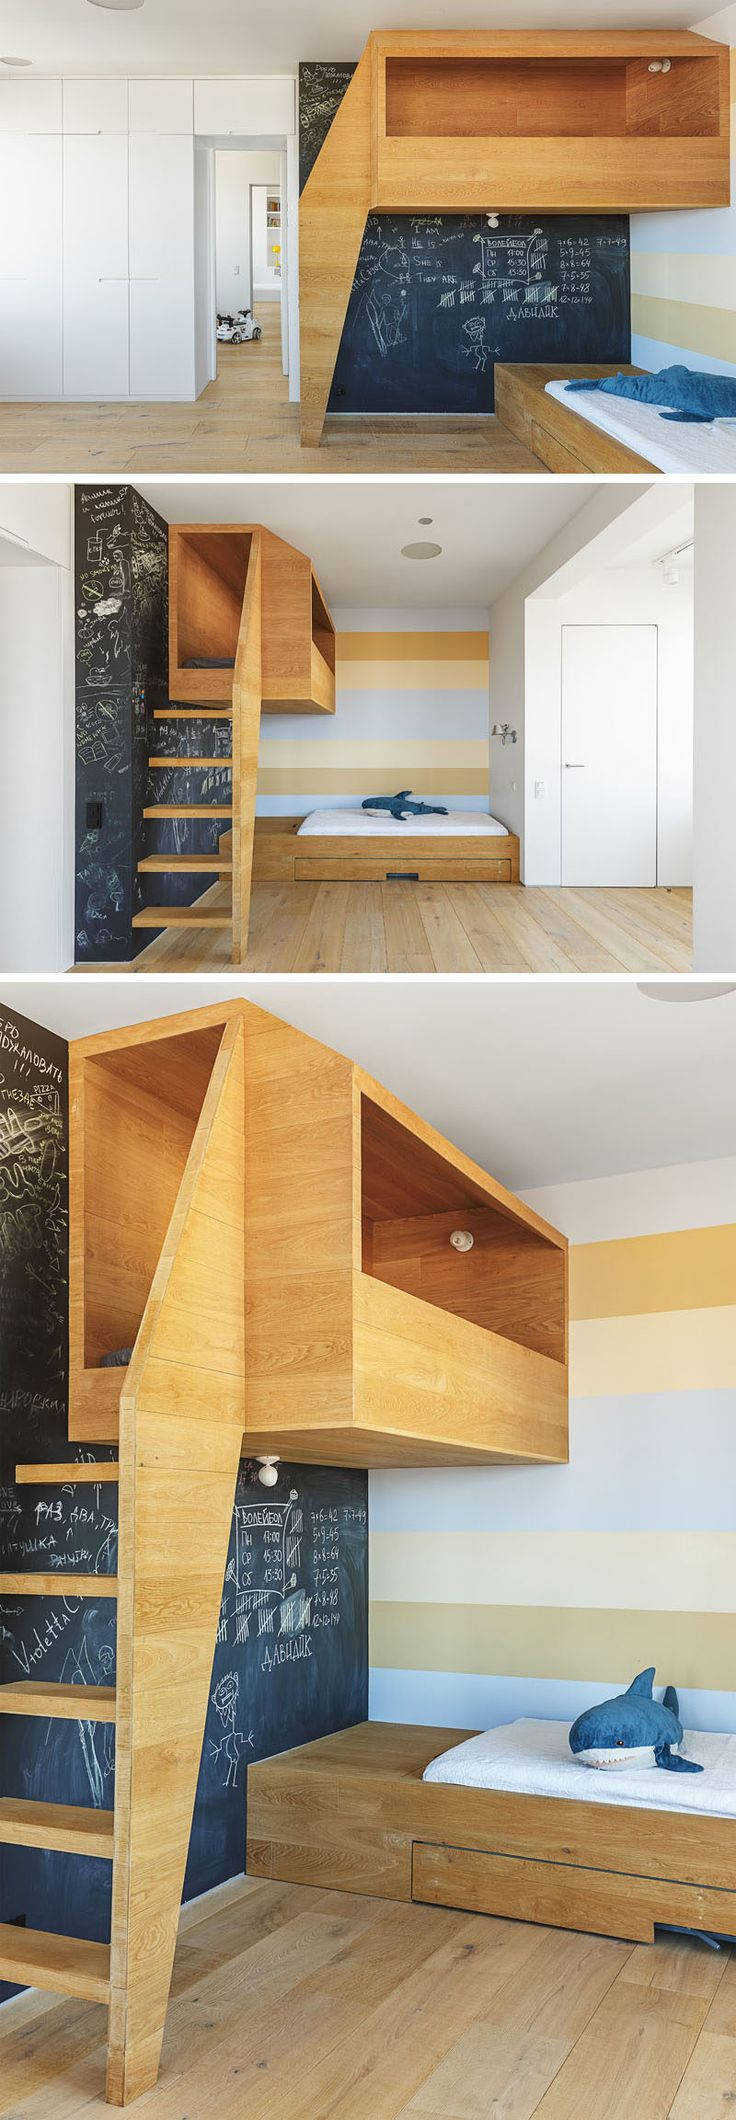 In This Kids Bedroom There S A Nest An Elevated Wooden Box Or